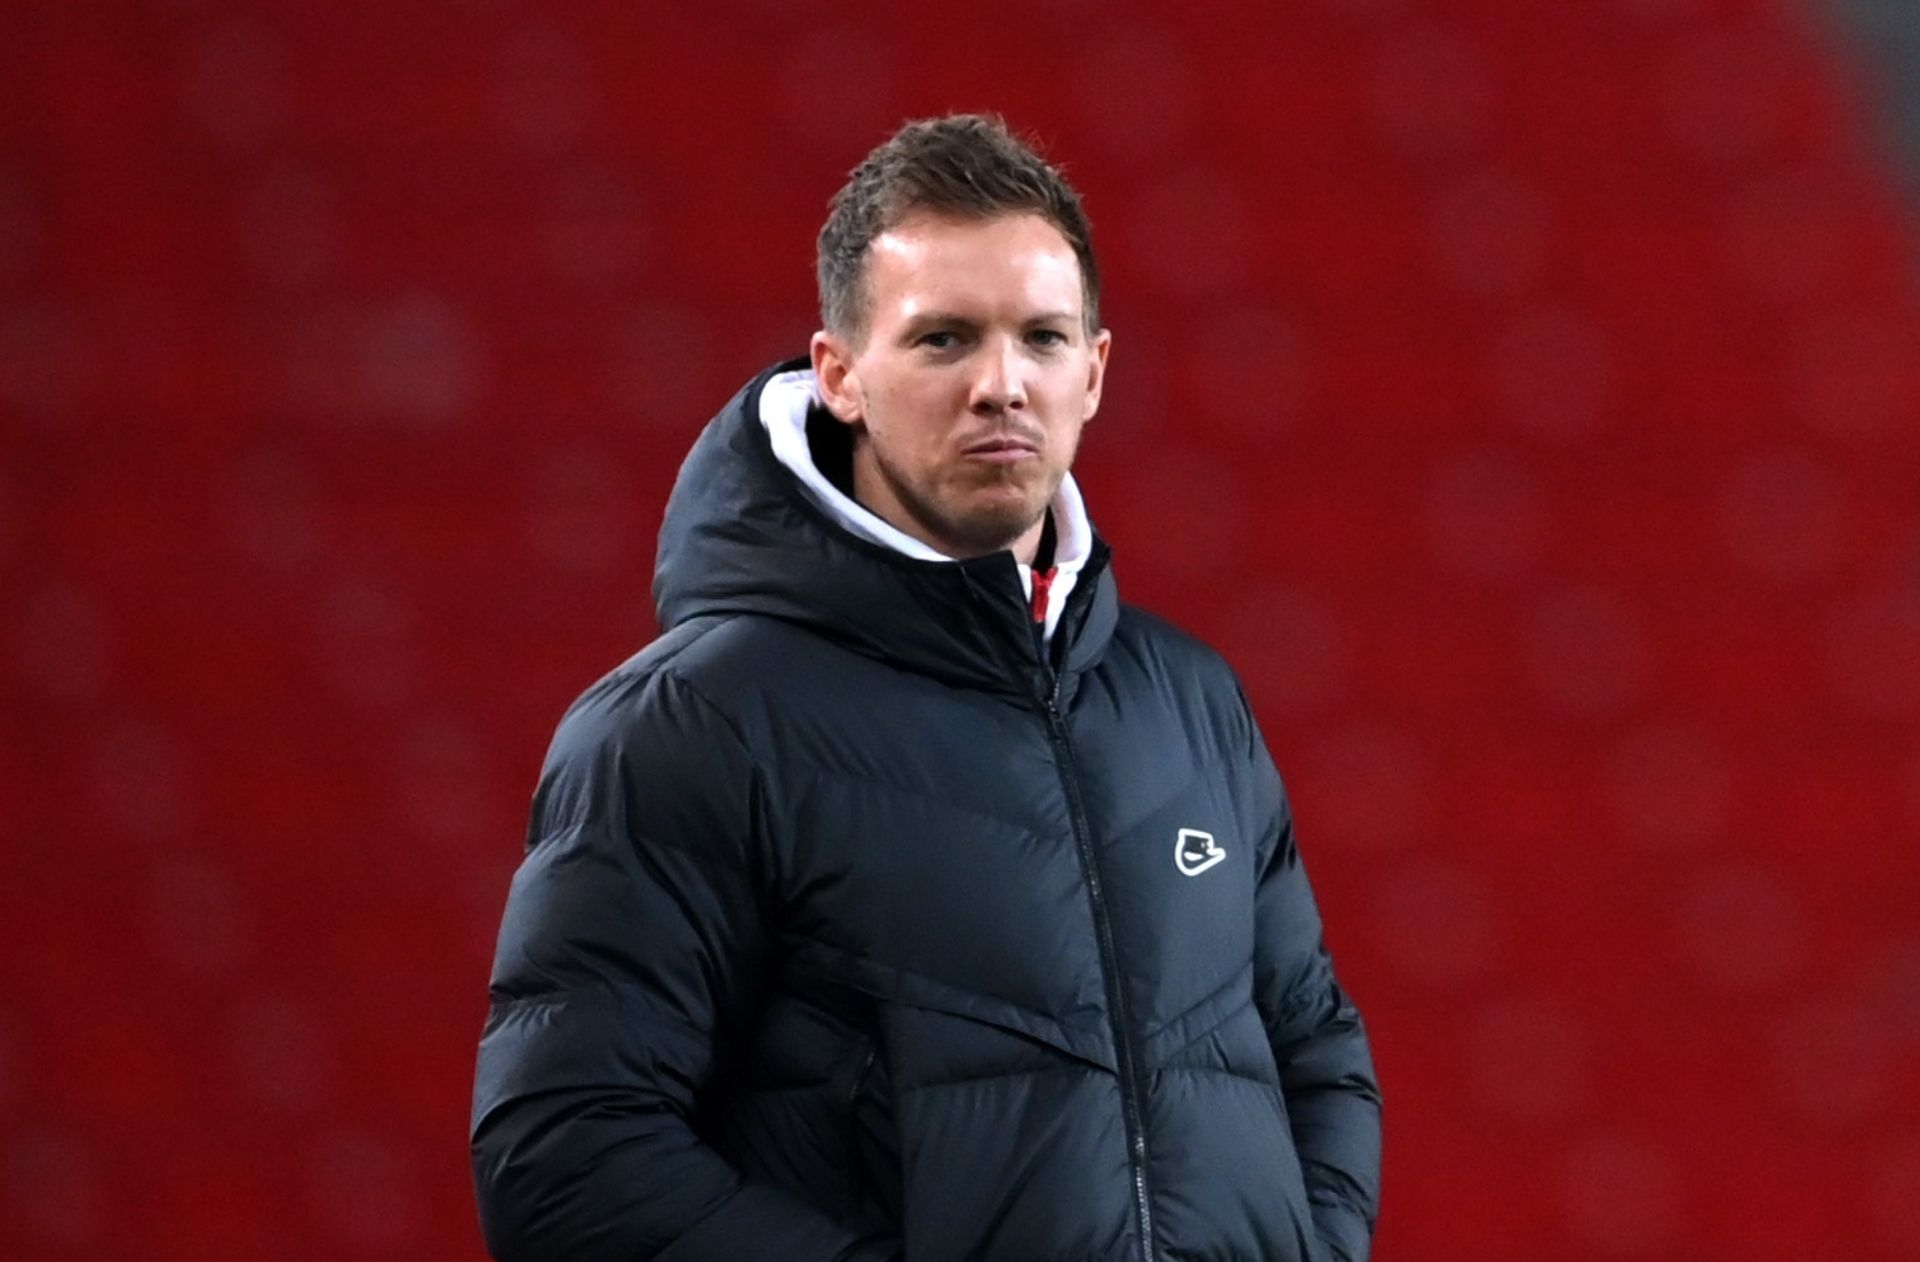 Nagelsmann not interested in becoming next Dortmund manager